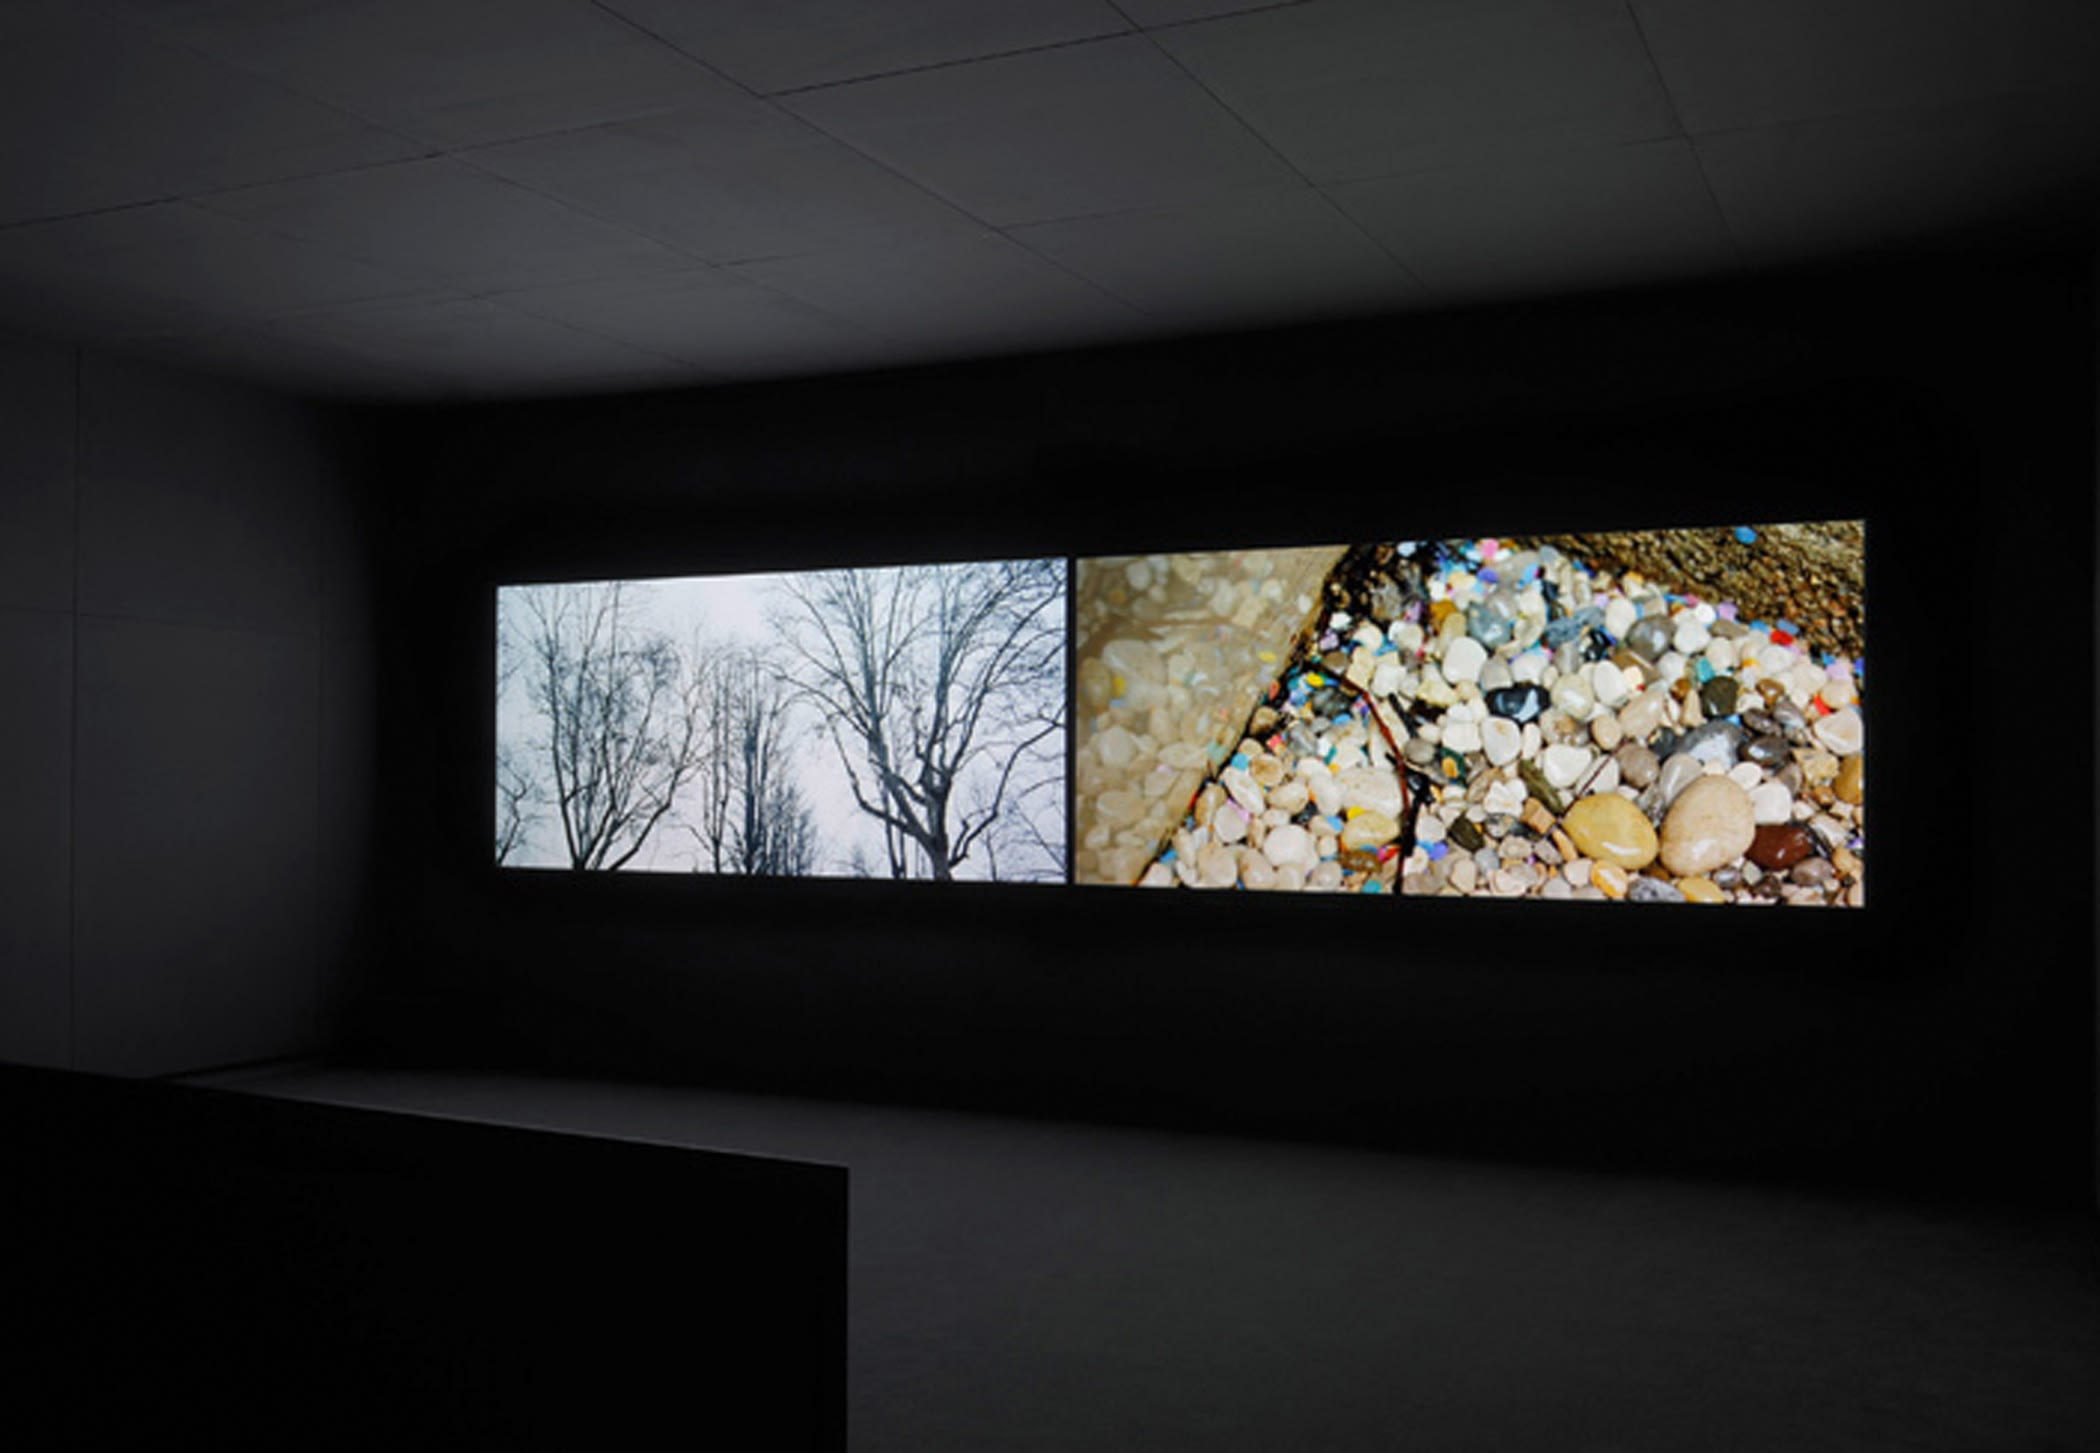 2 projection screens sit horizontally in a dark theater. The left displays trees and an overcast sky; the right colorful stones.